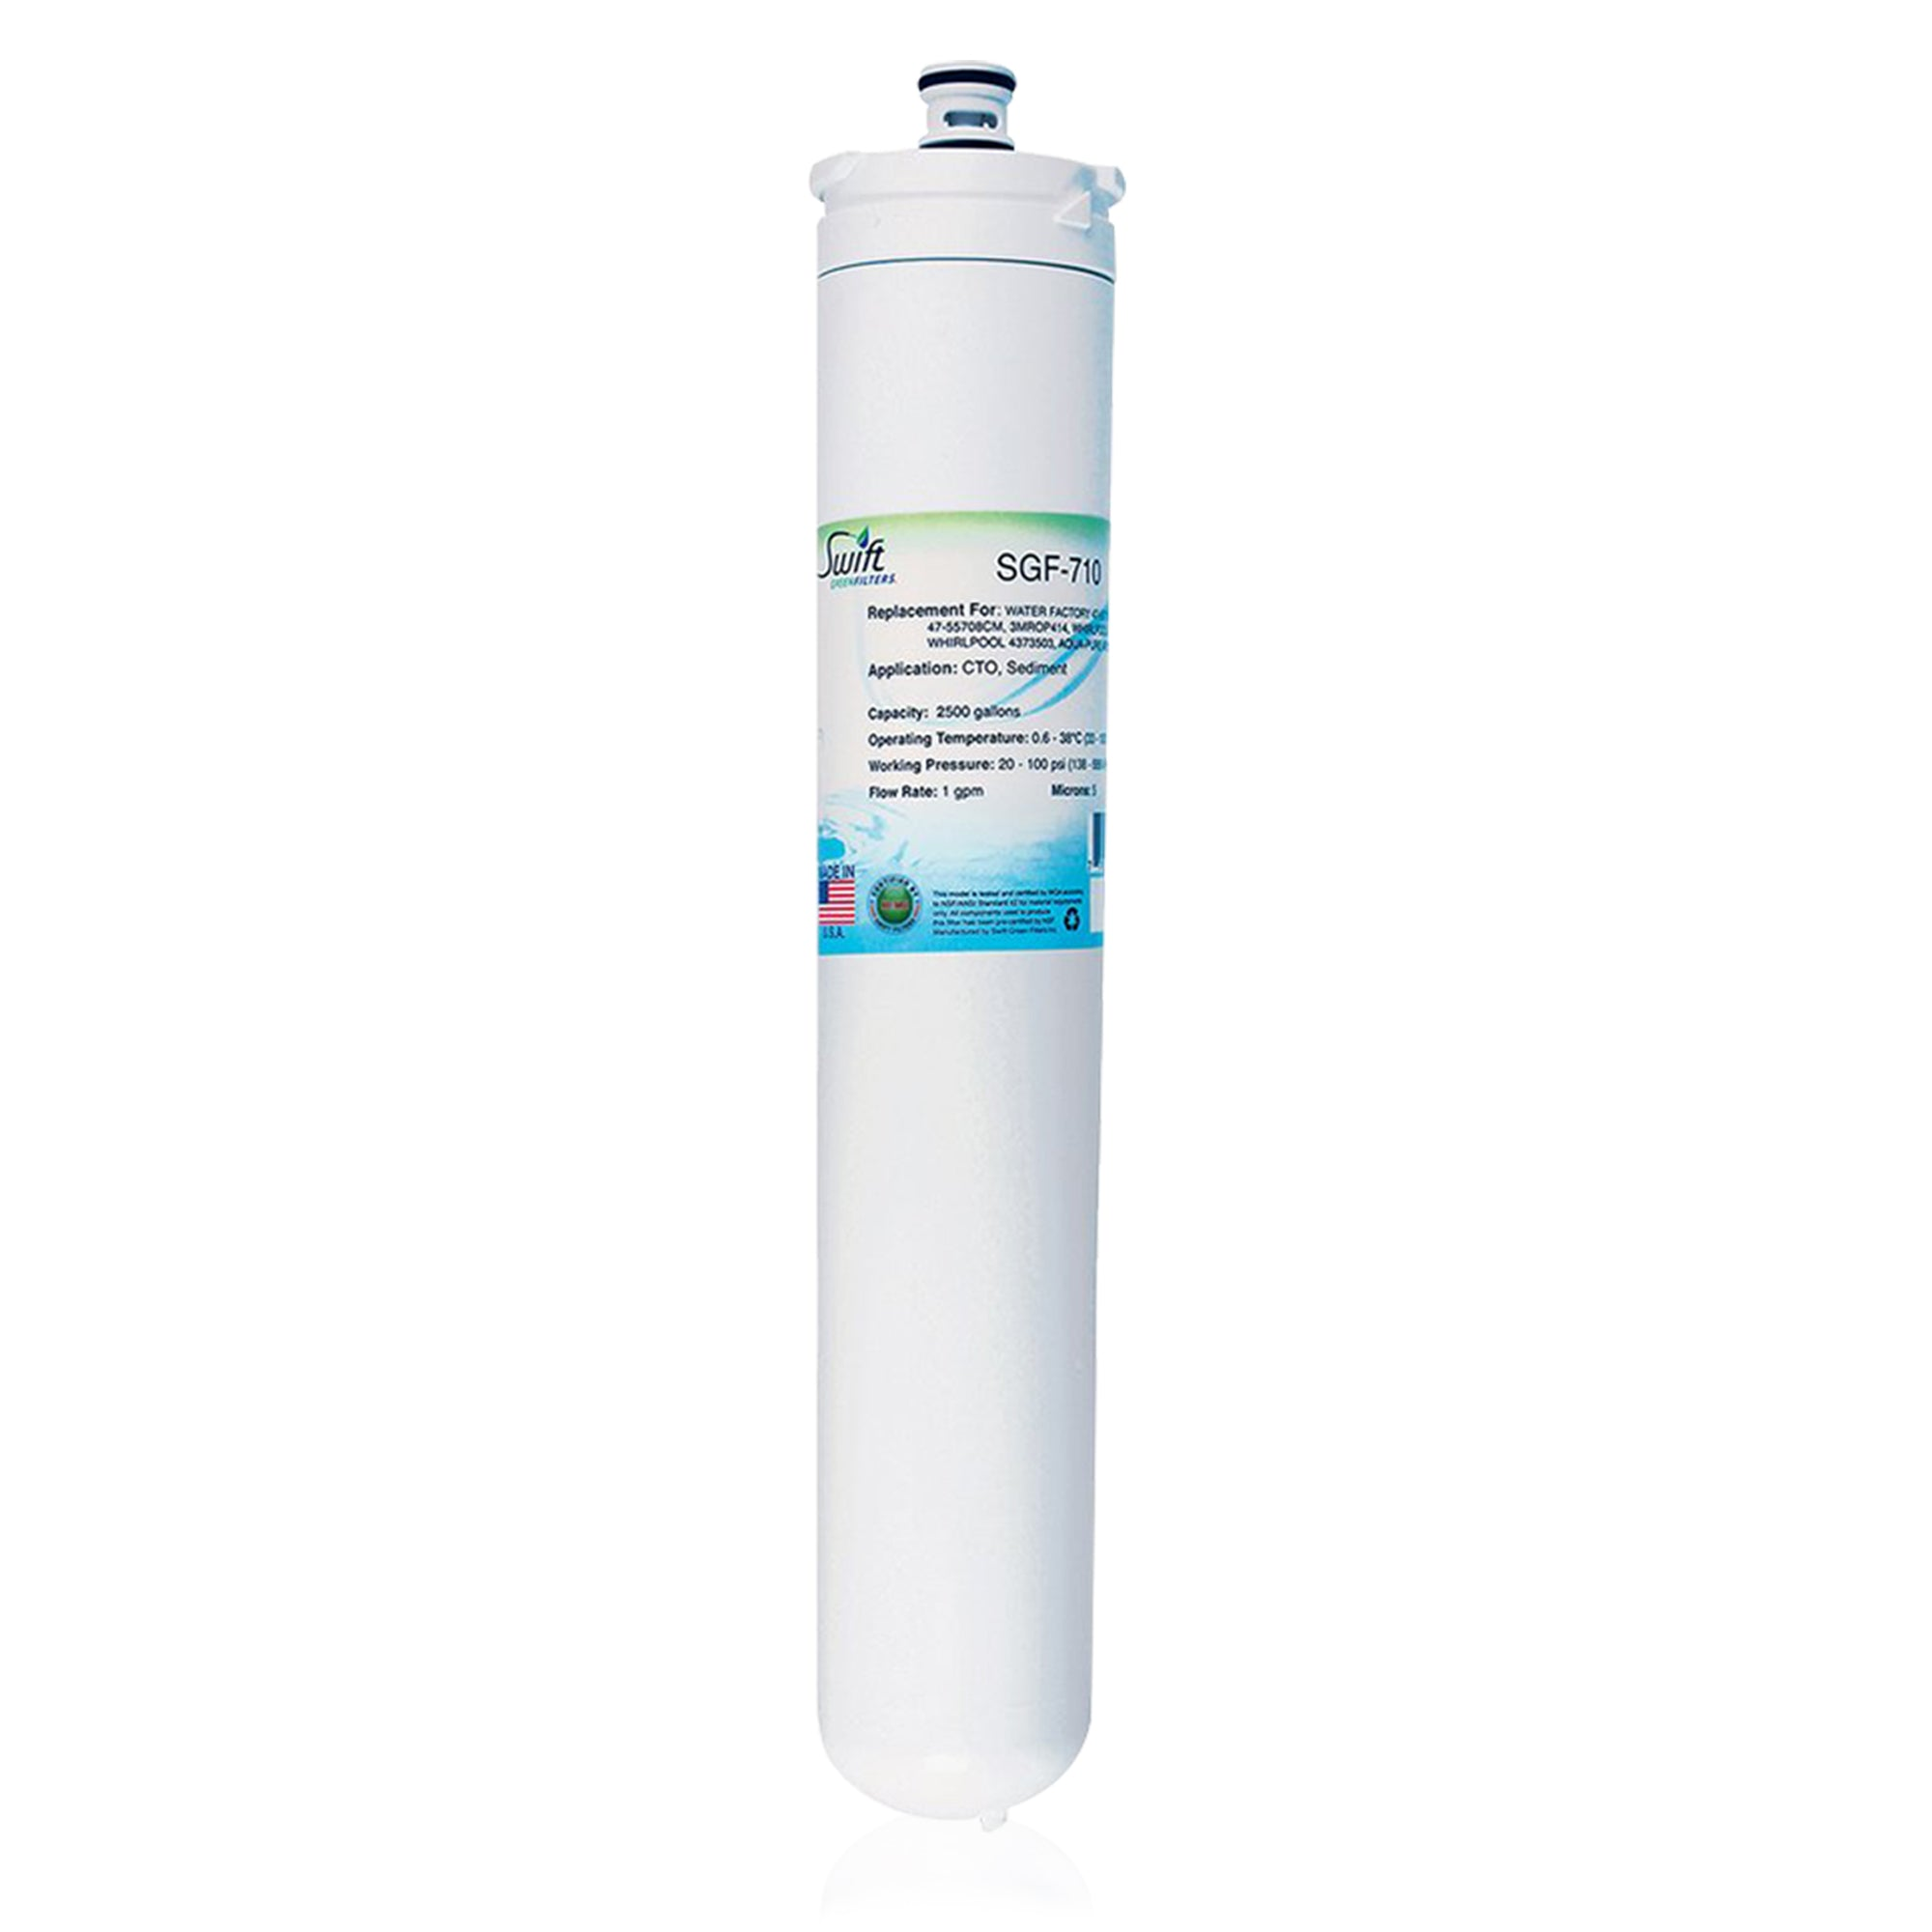 Replacement for 3M Water Factory 47-55710G2 Filter by Swift Green Filters SGF-710